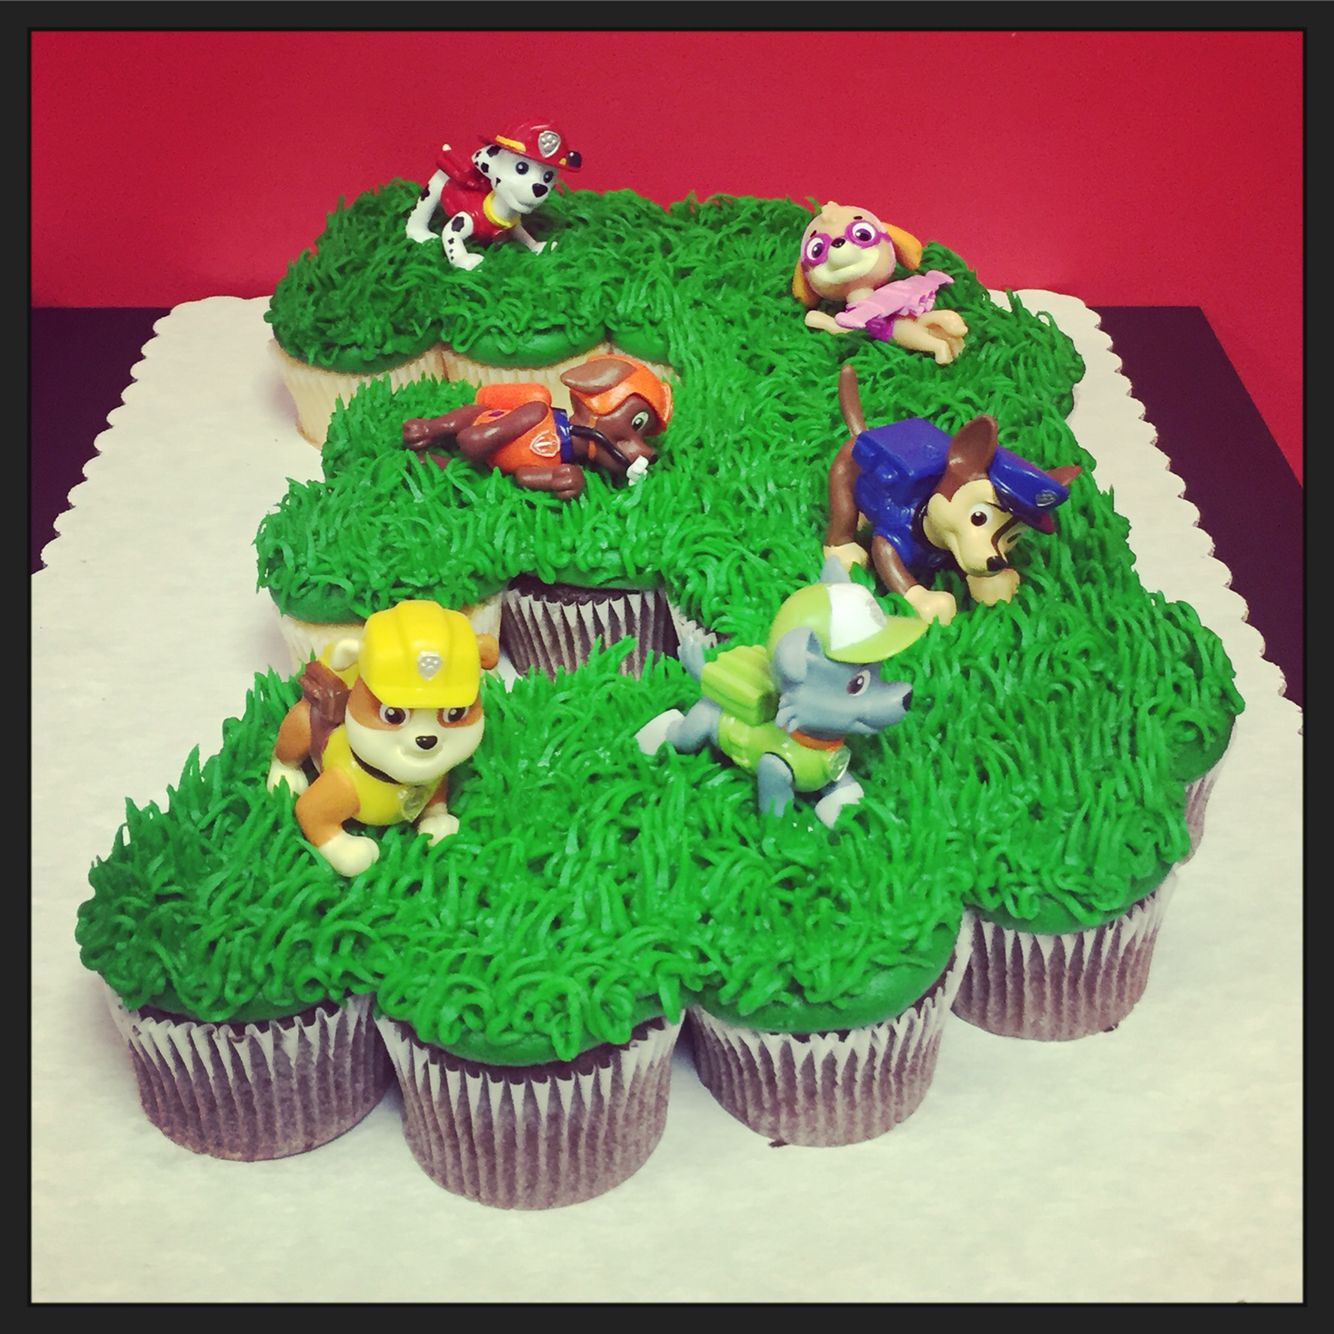 Cupcake Cake Ideas For Boy Birthday : Paw patrol cupcake cake Completed Pinterest projects ...